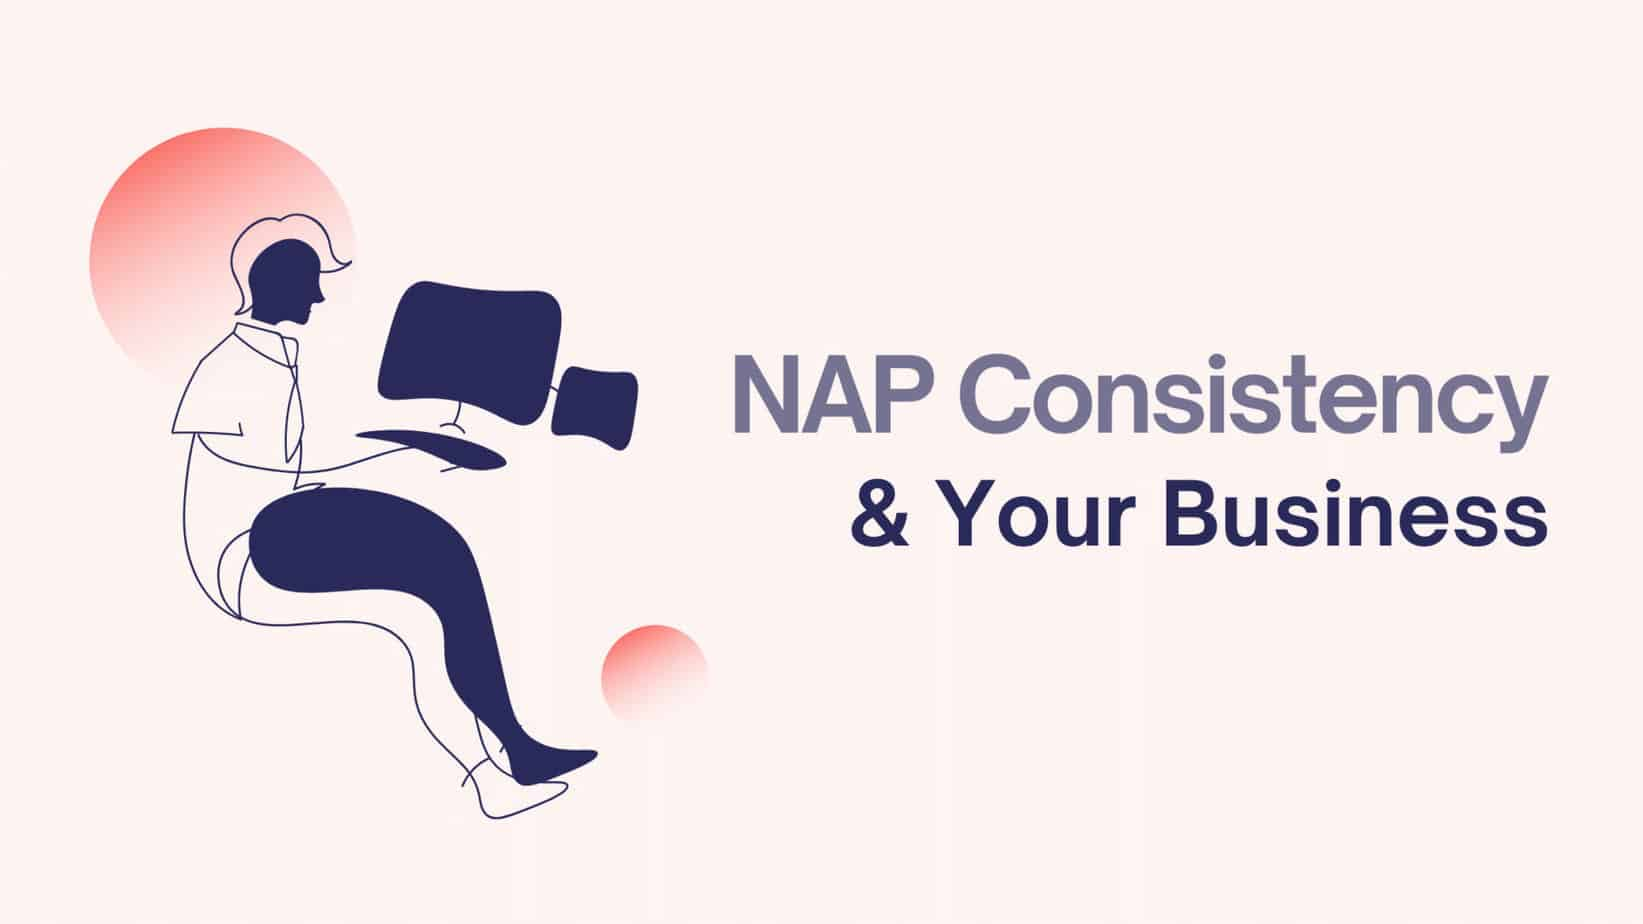 NAP Consistency & Your Business